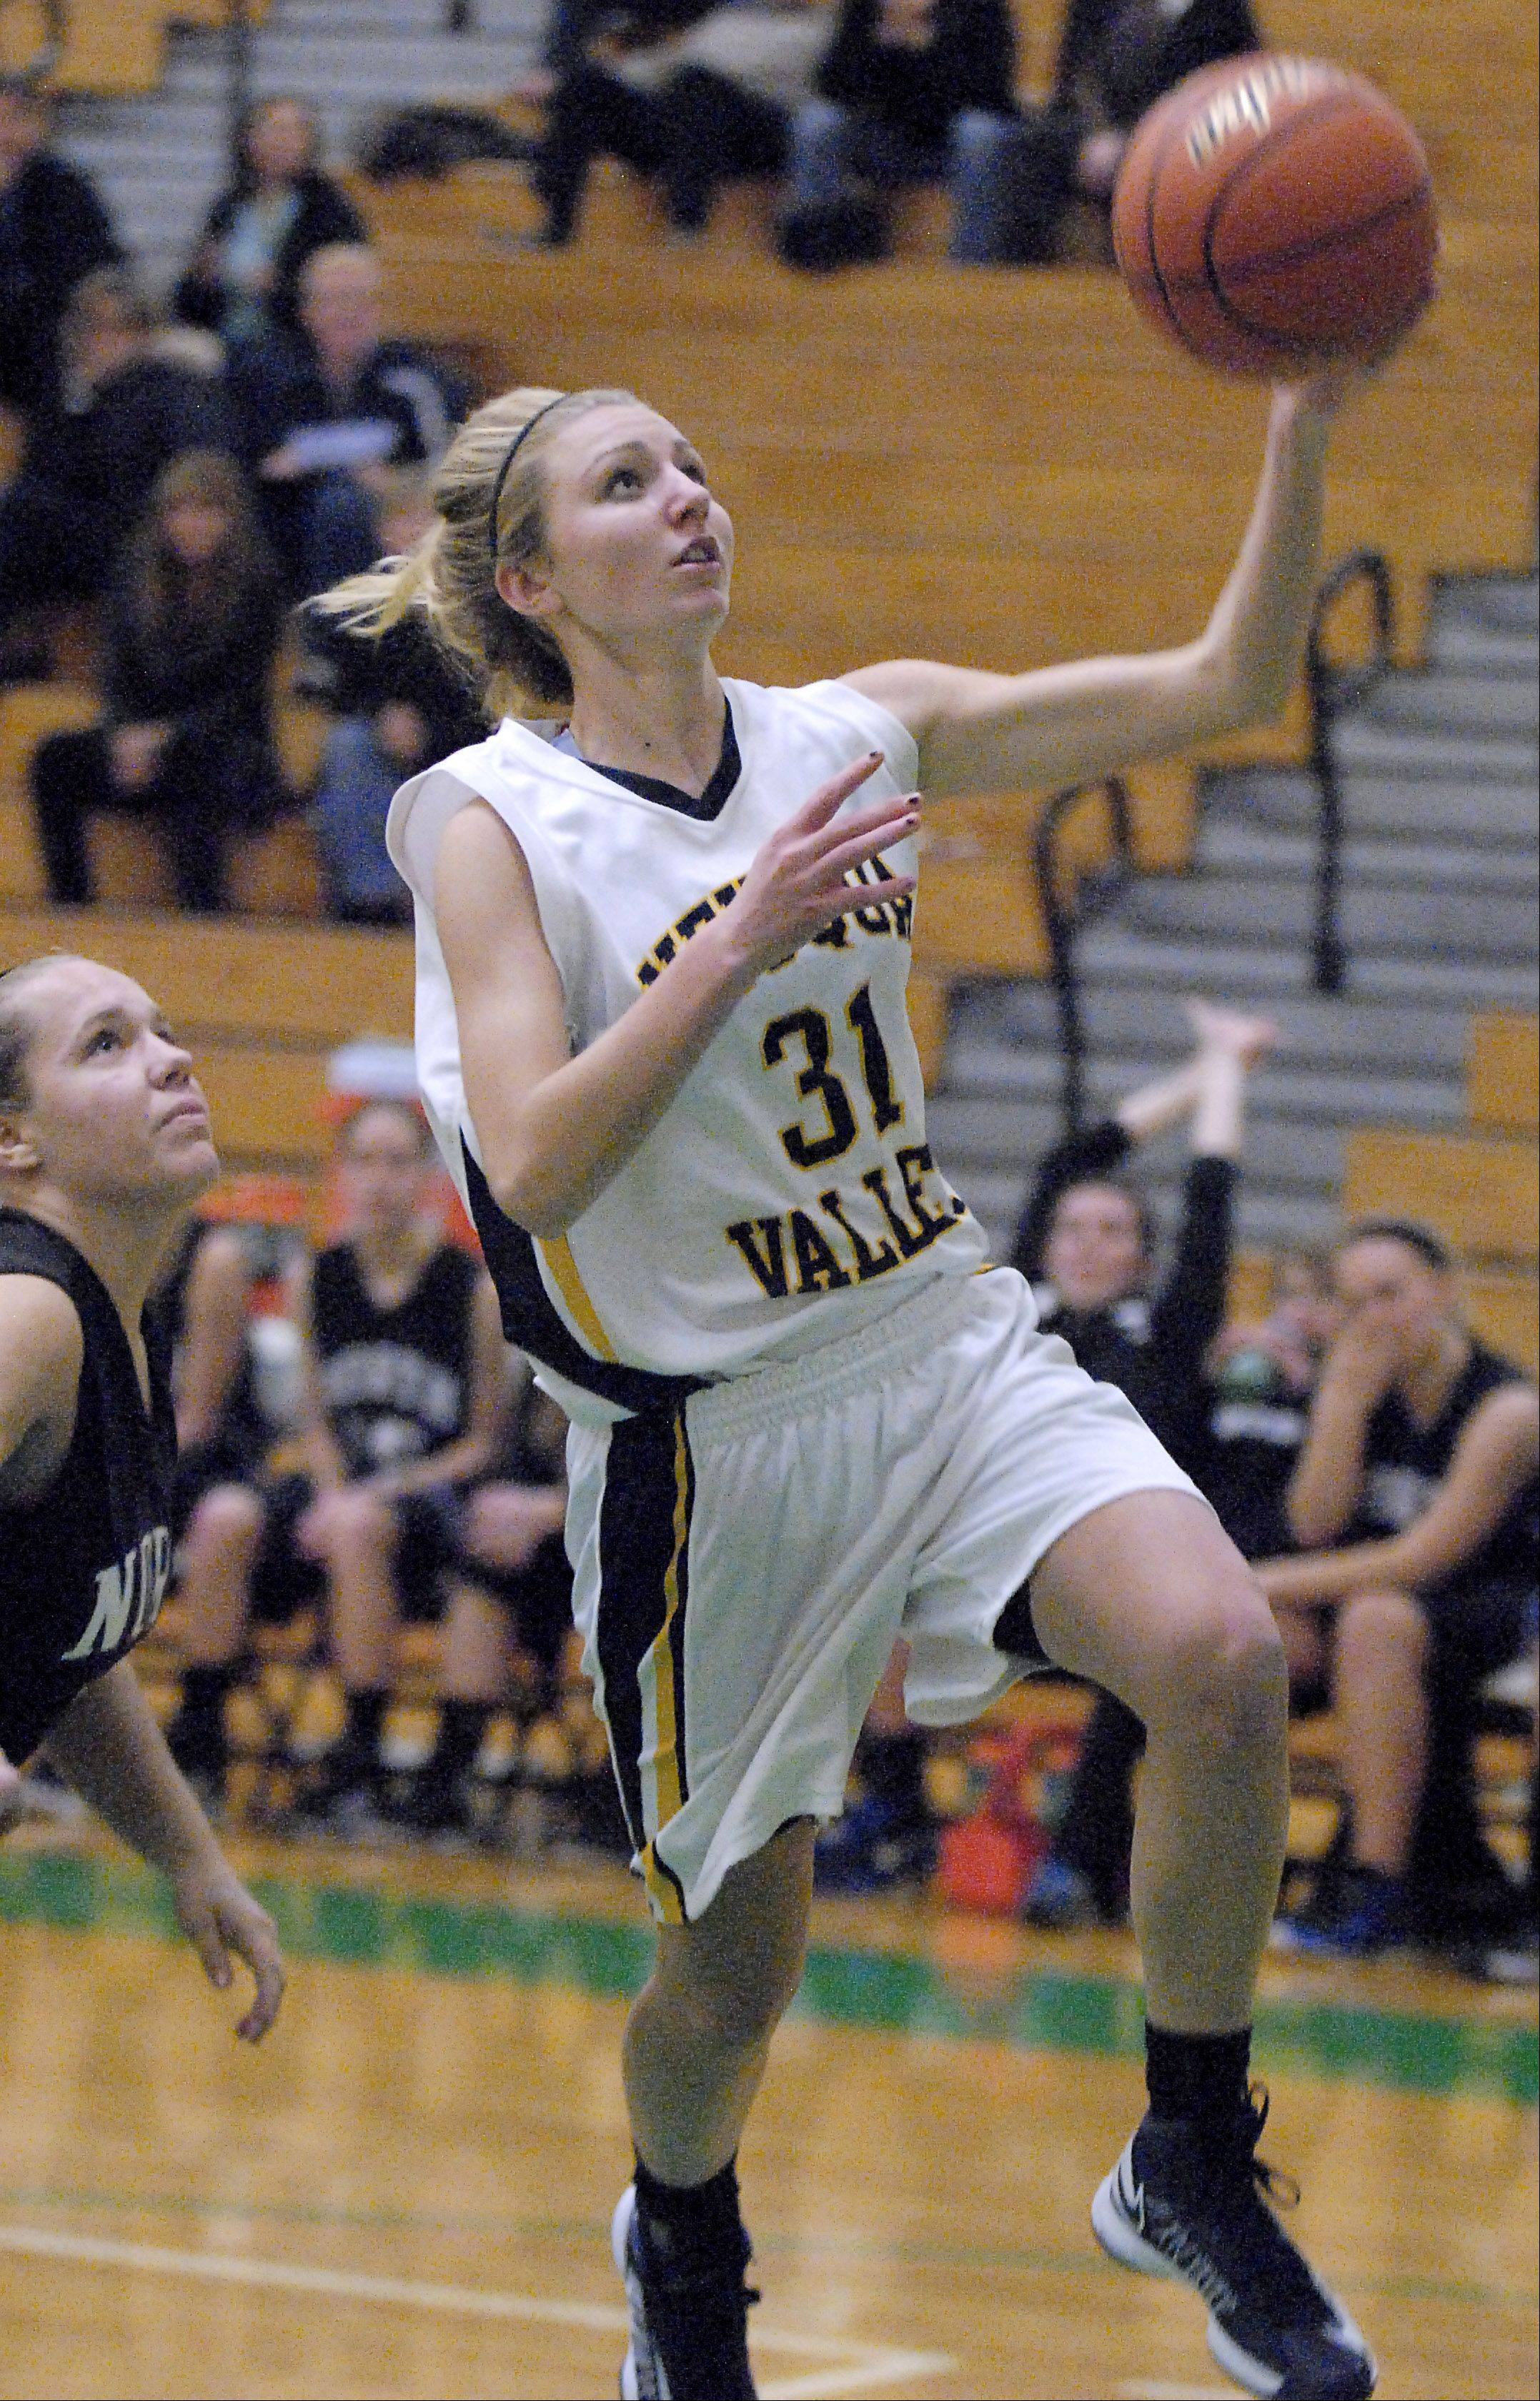 Nequa Valley's Megan Kalkofen sinks a shot in the second quarter on Wednesday, November 14.